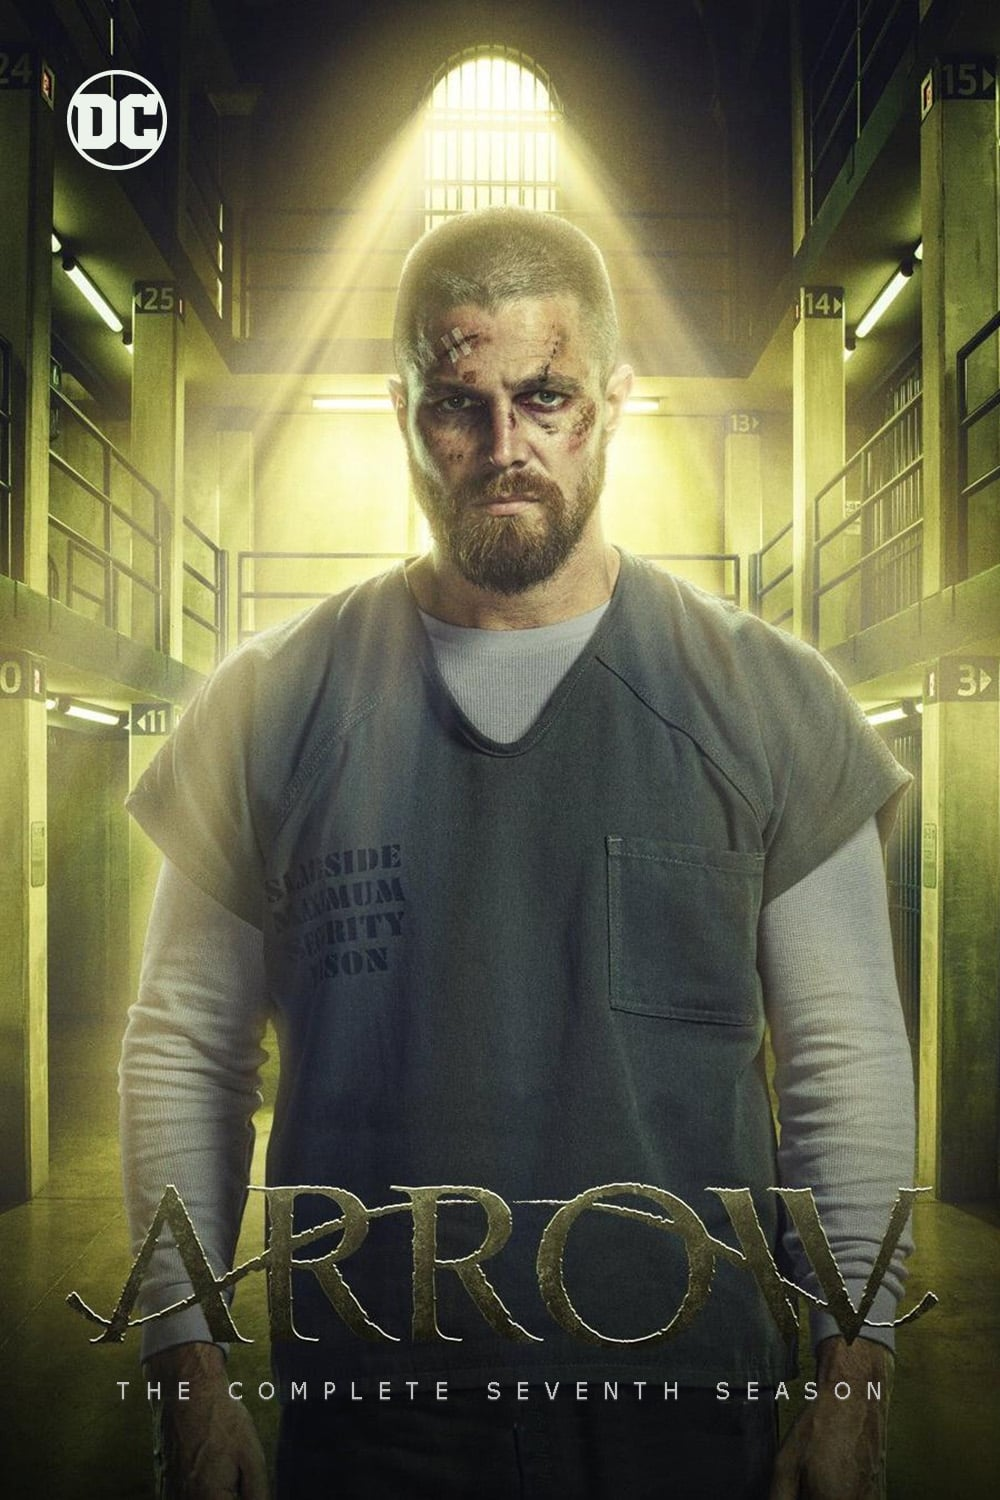 Arrow Season 7 Episode 18 Added